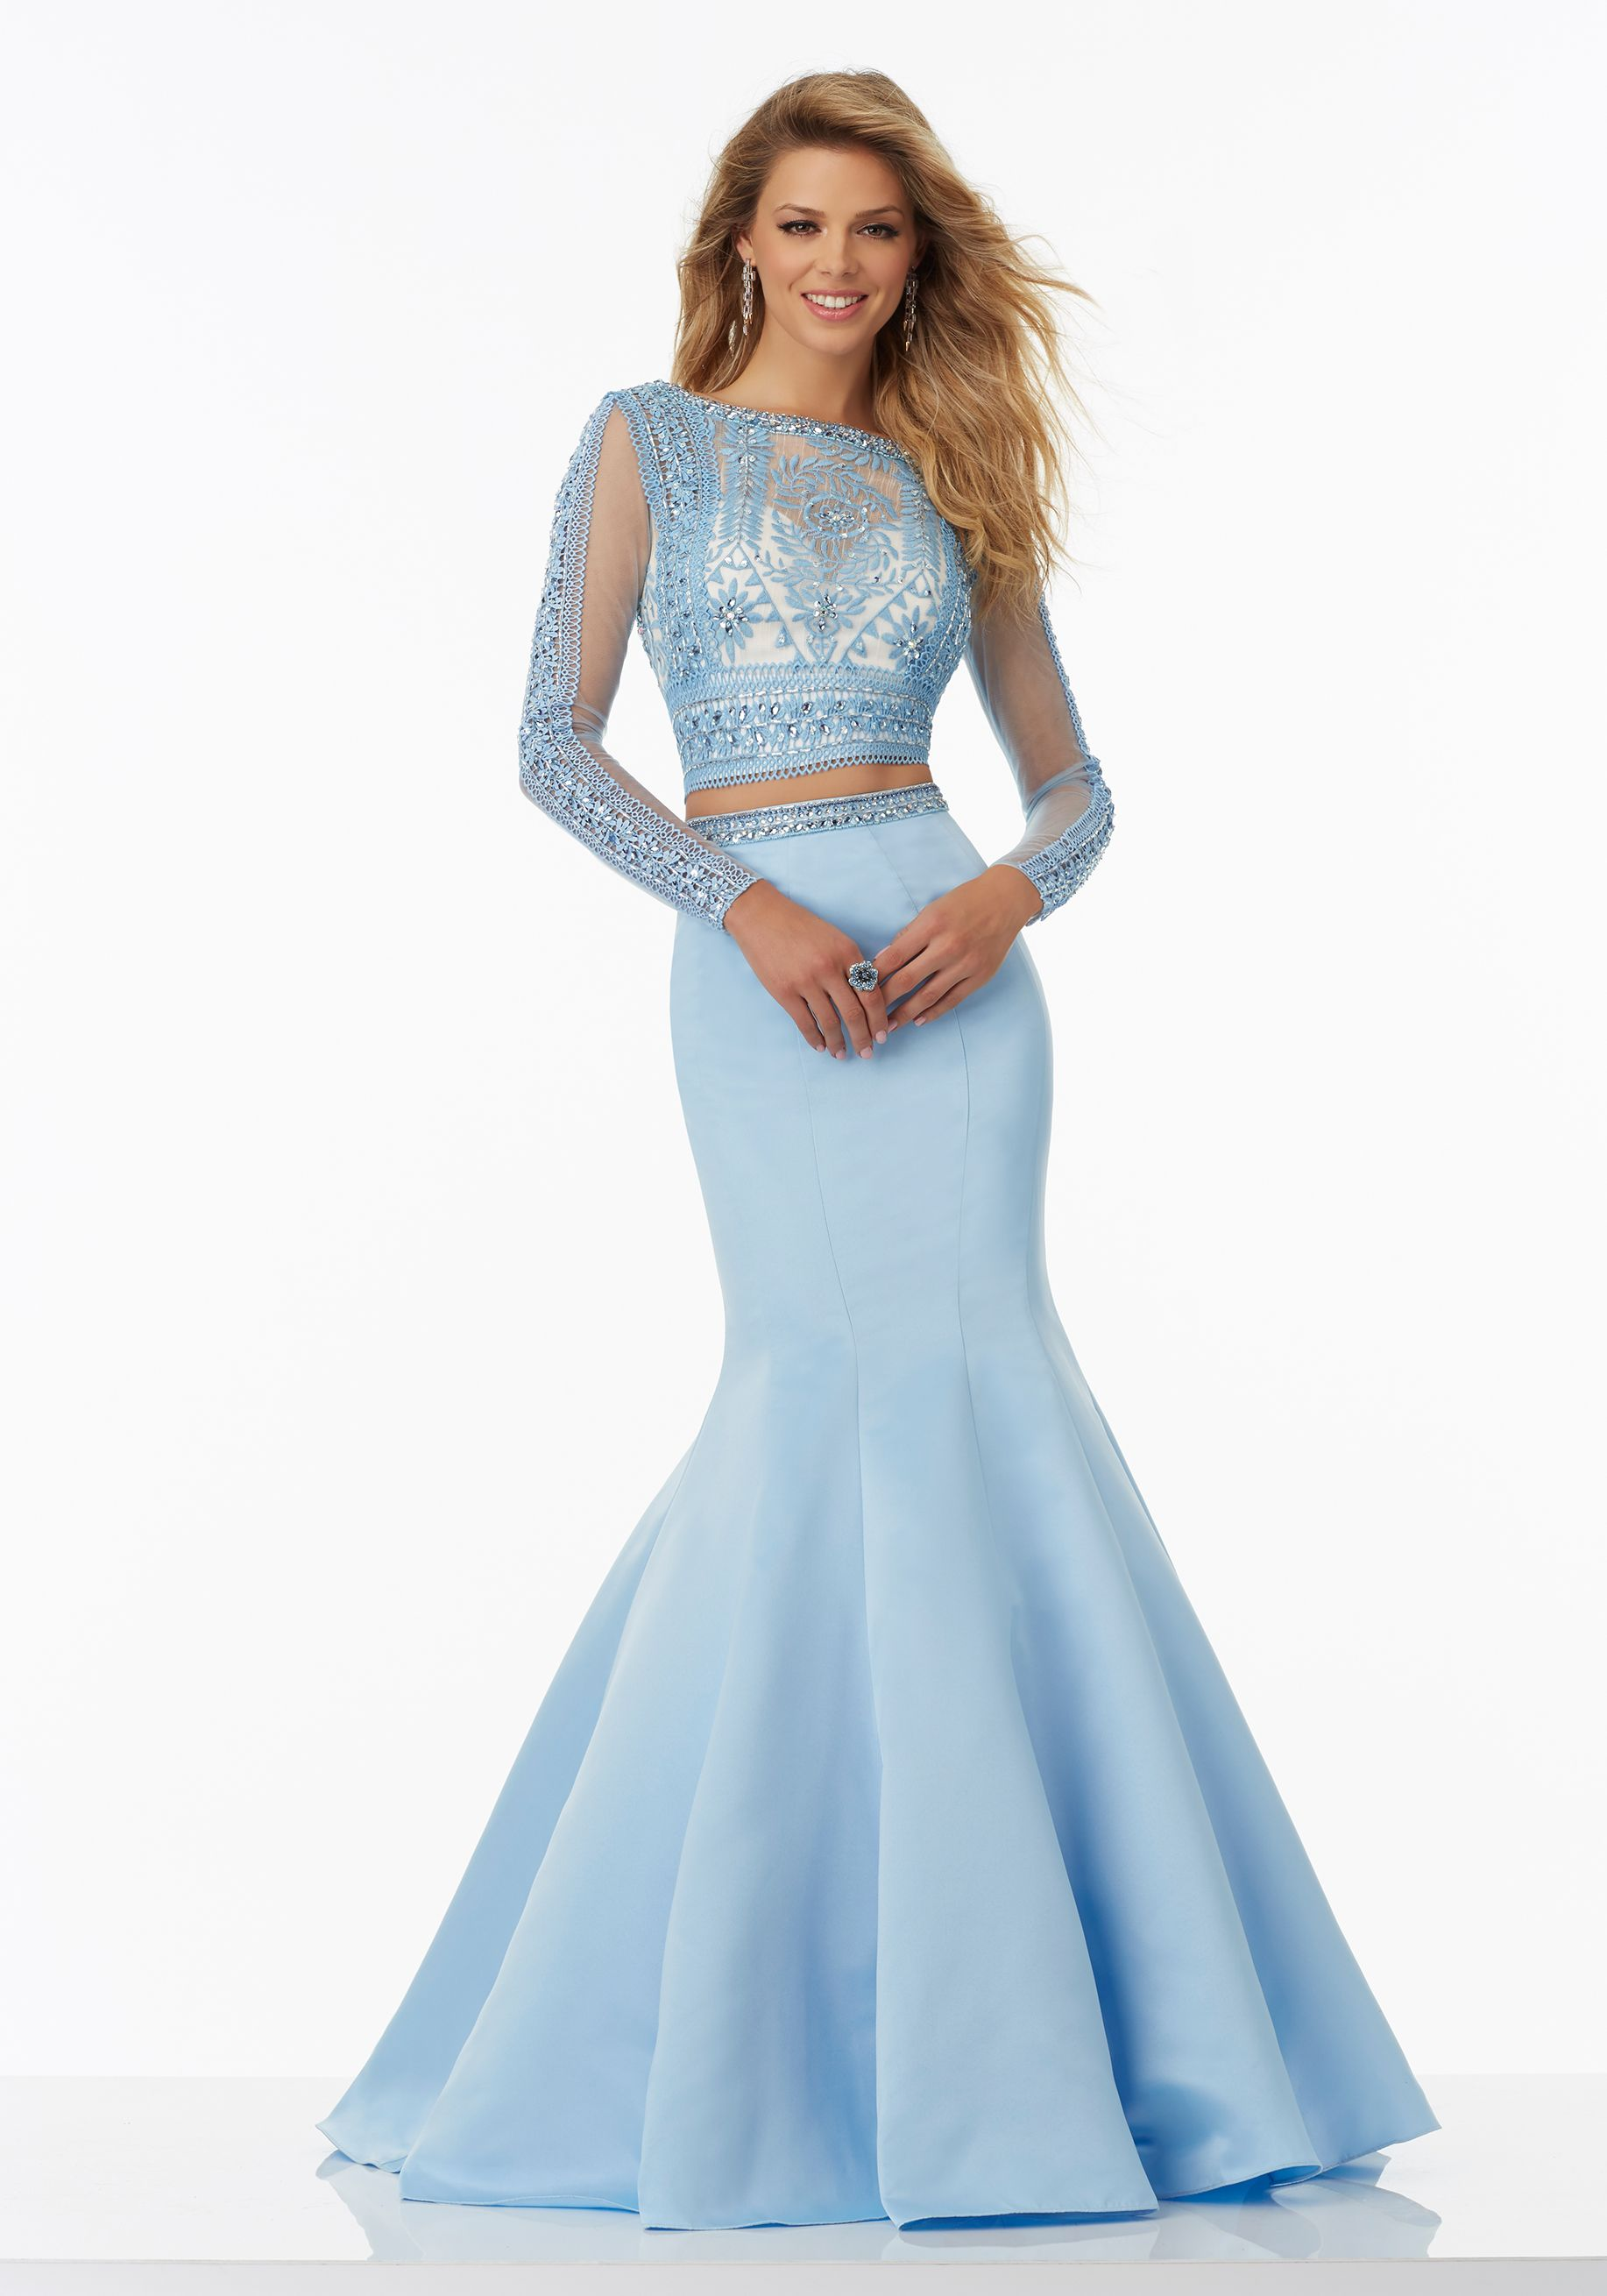 Long Sleeve TwoPiece Prom Dress with Satin Skirt and Embroidered